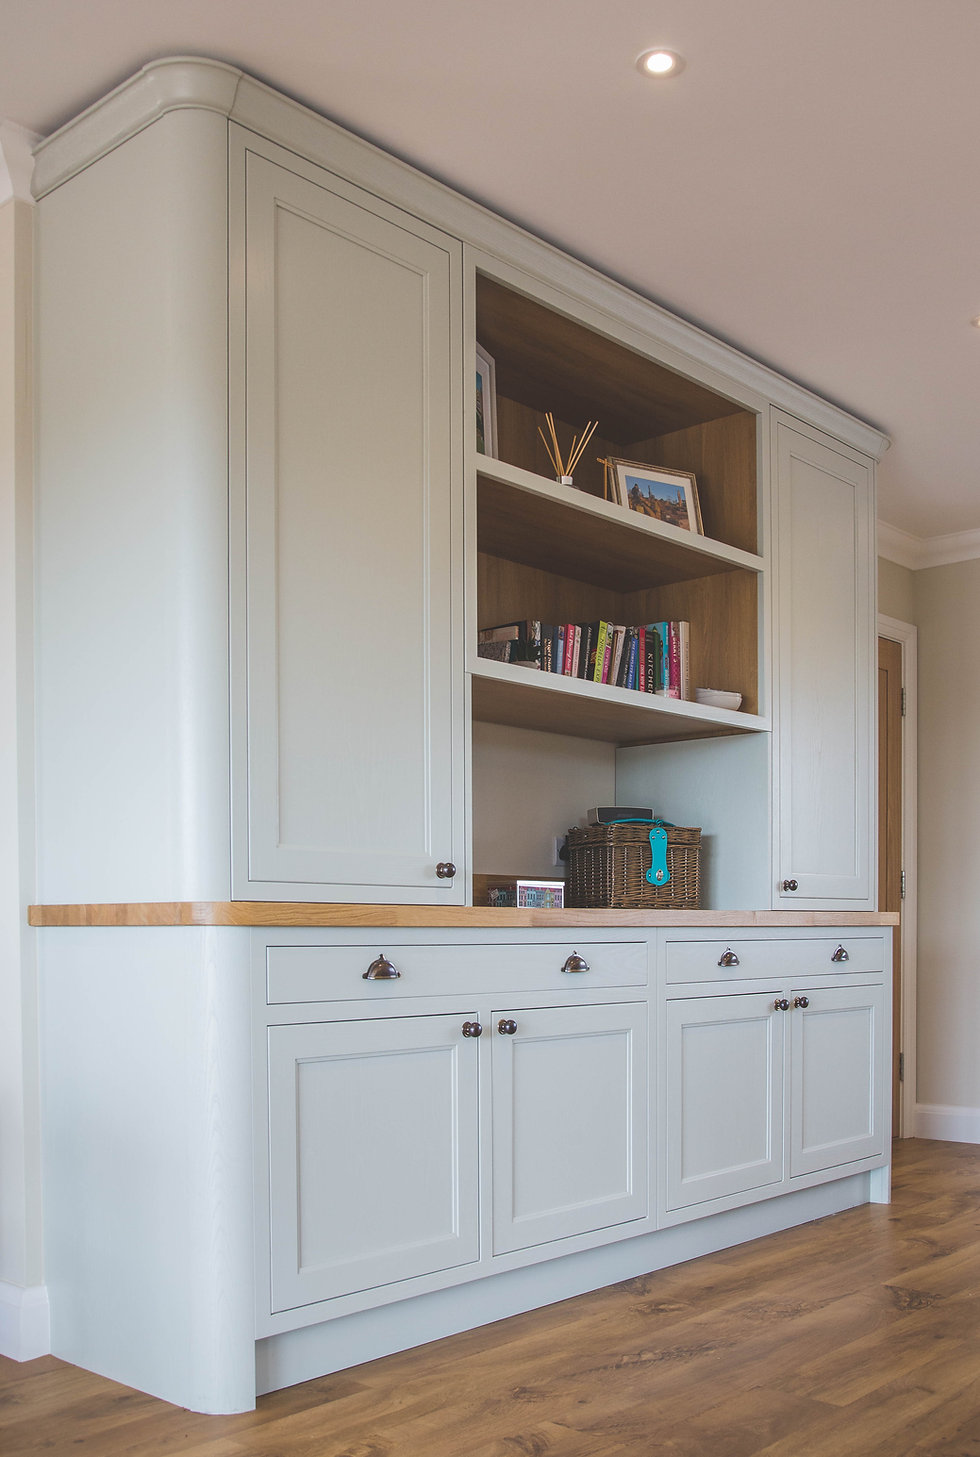 In-Frame Shaker Kitchen with Green Kitchen Units